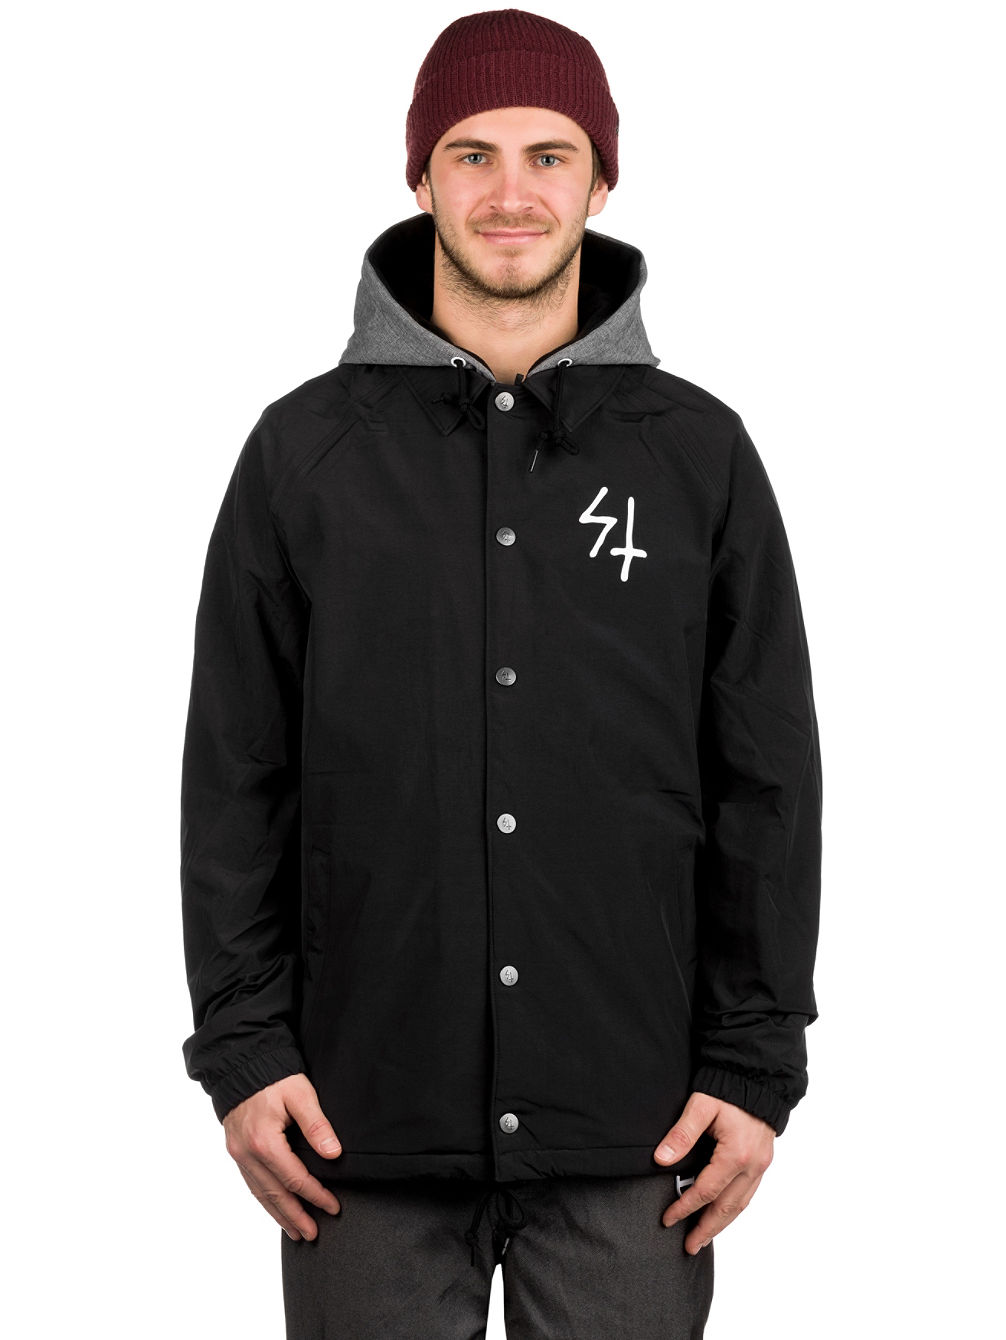 Carhartt jacke manner